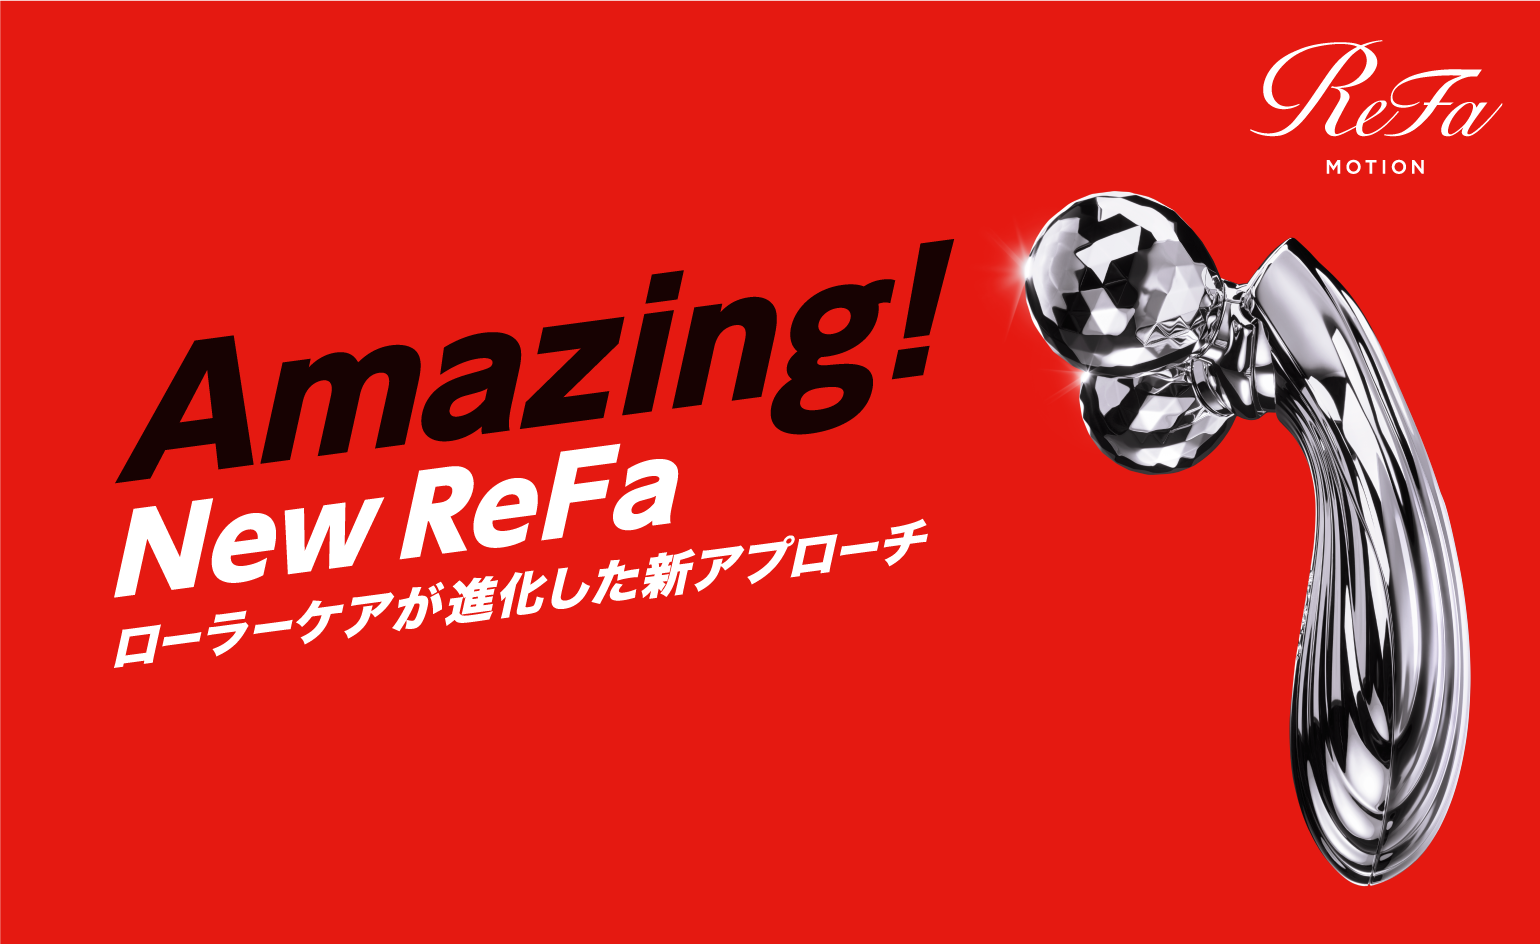 Amazing!NEW ReFa MOTION CAMPAIGN